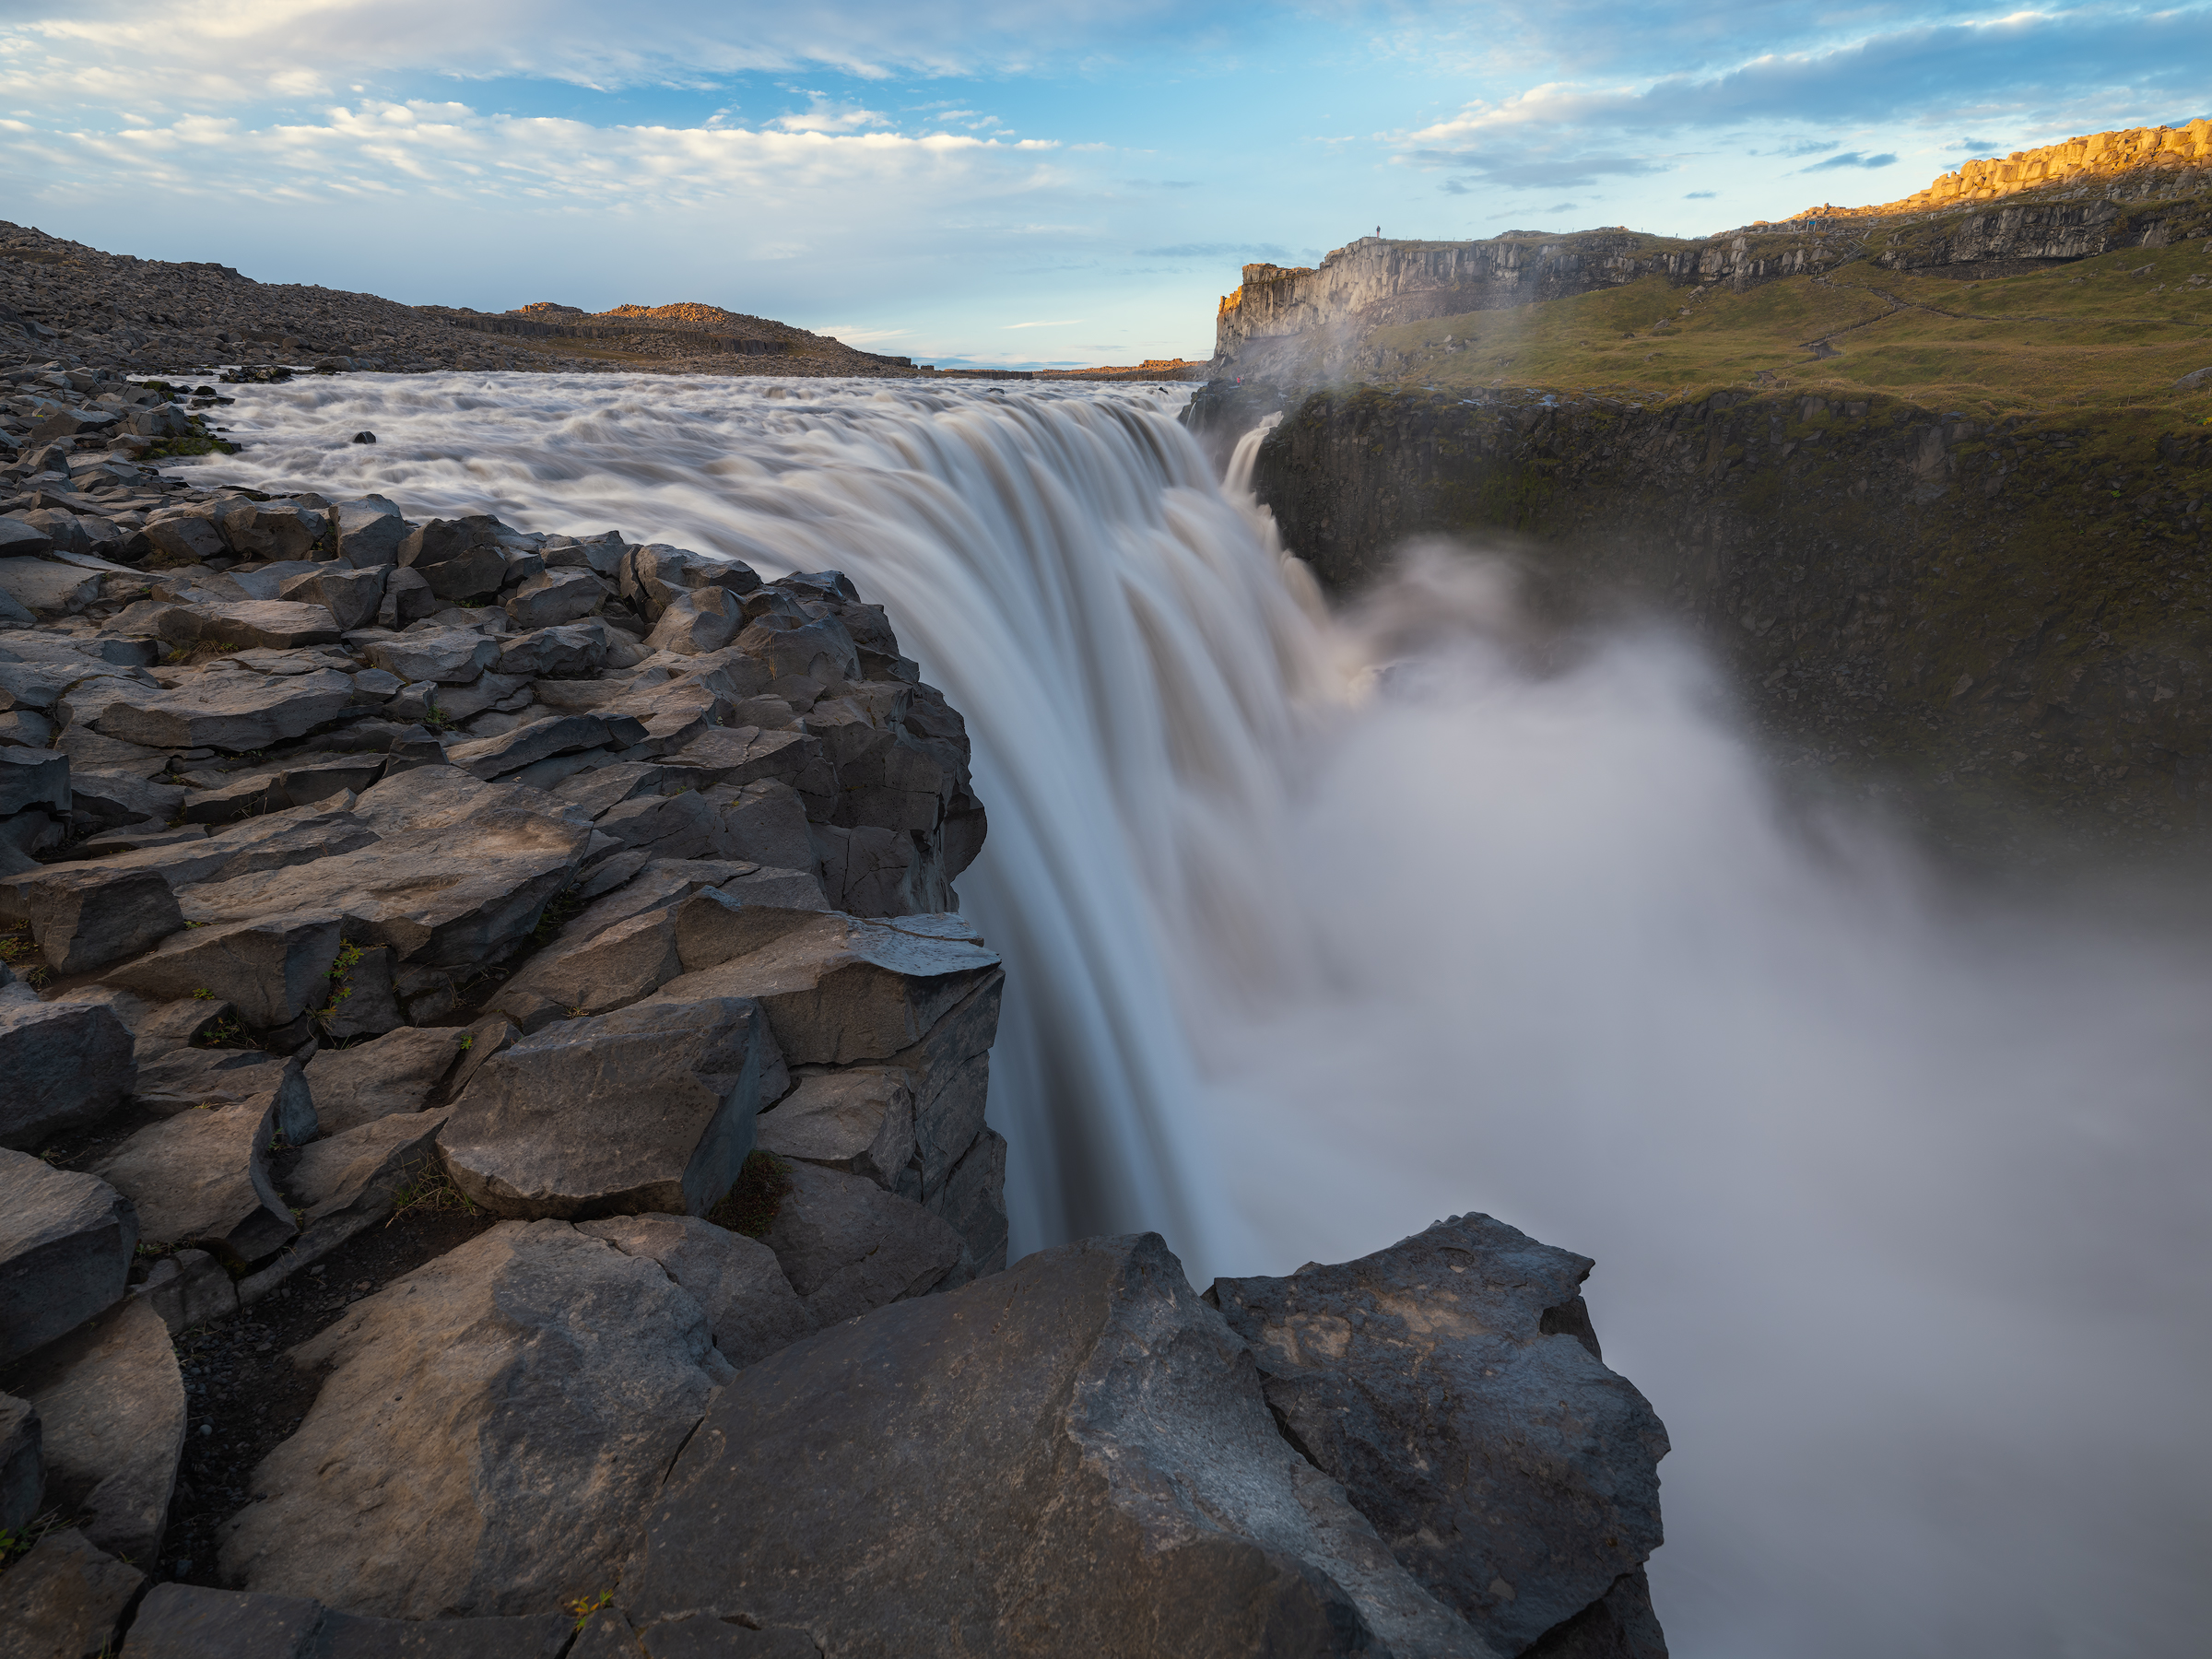 The incredible flow of Dettifoss.